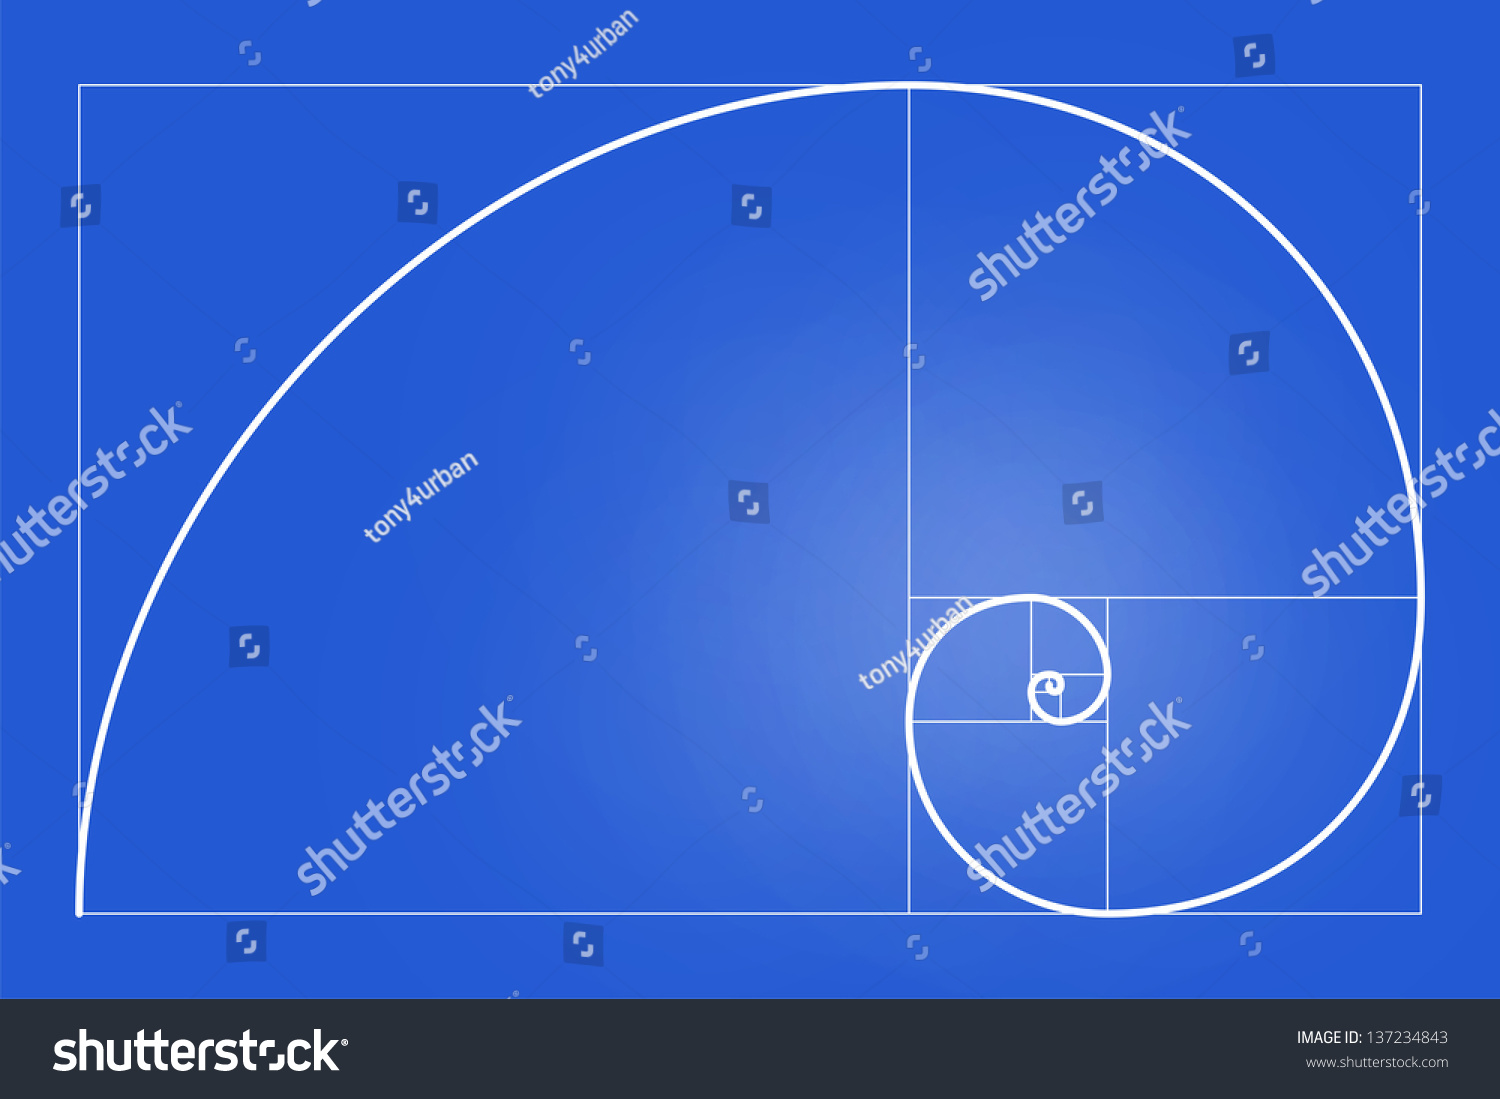 Very big size golden ratio golden stock illustration for Size and proportion